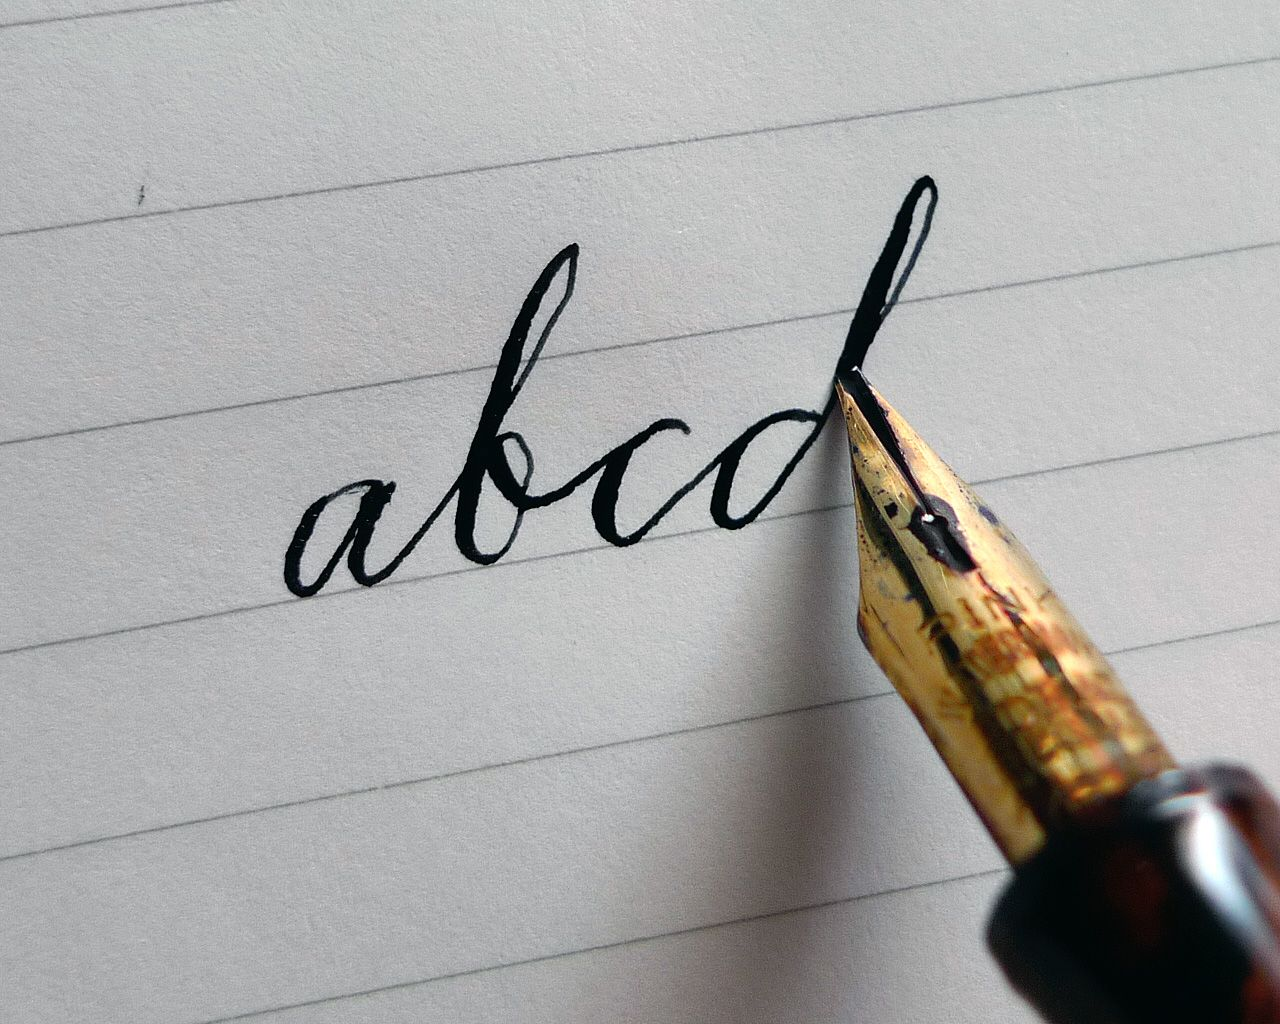 An entry from note to self calligraphy penmanship and Learn calligraphy letters